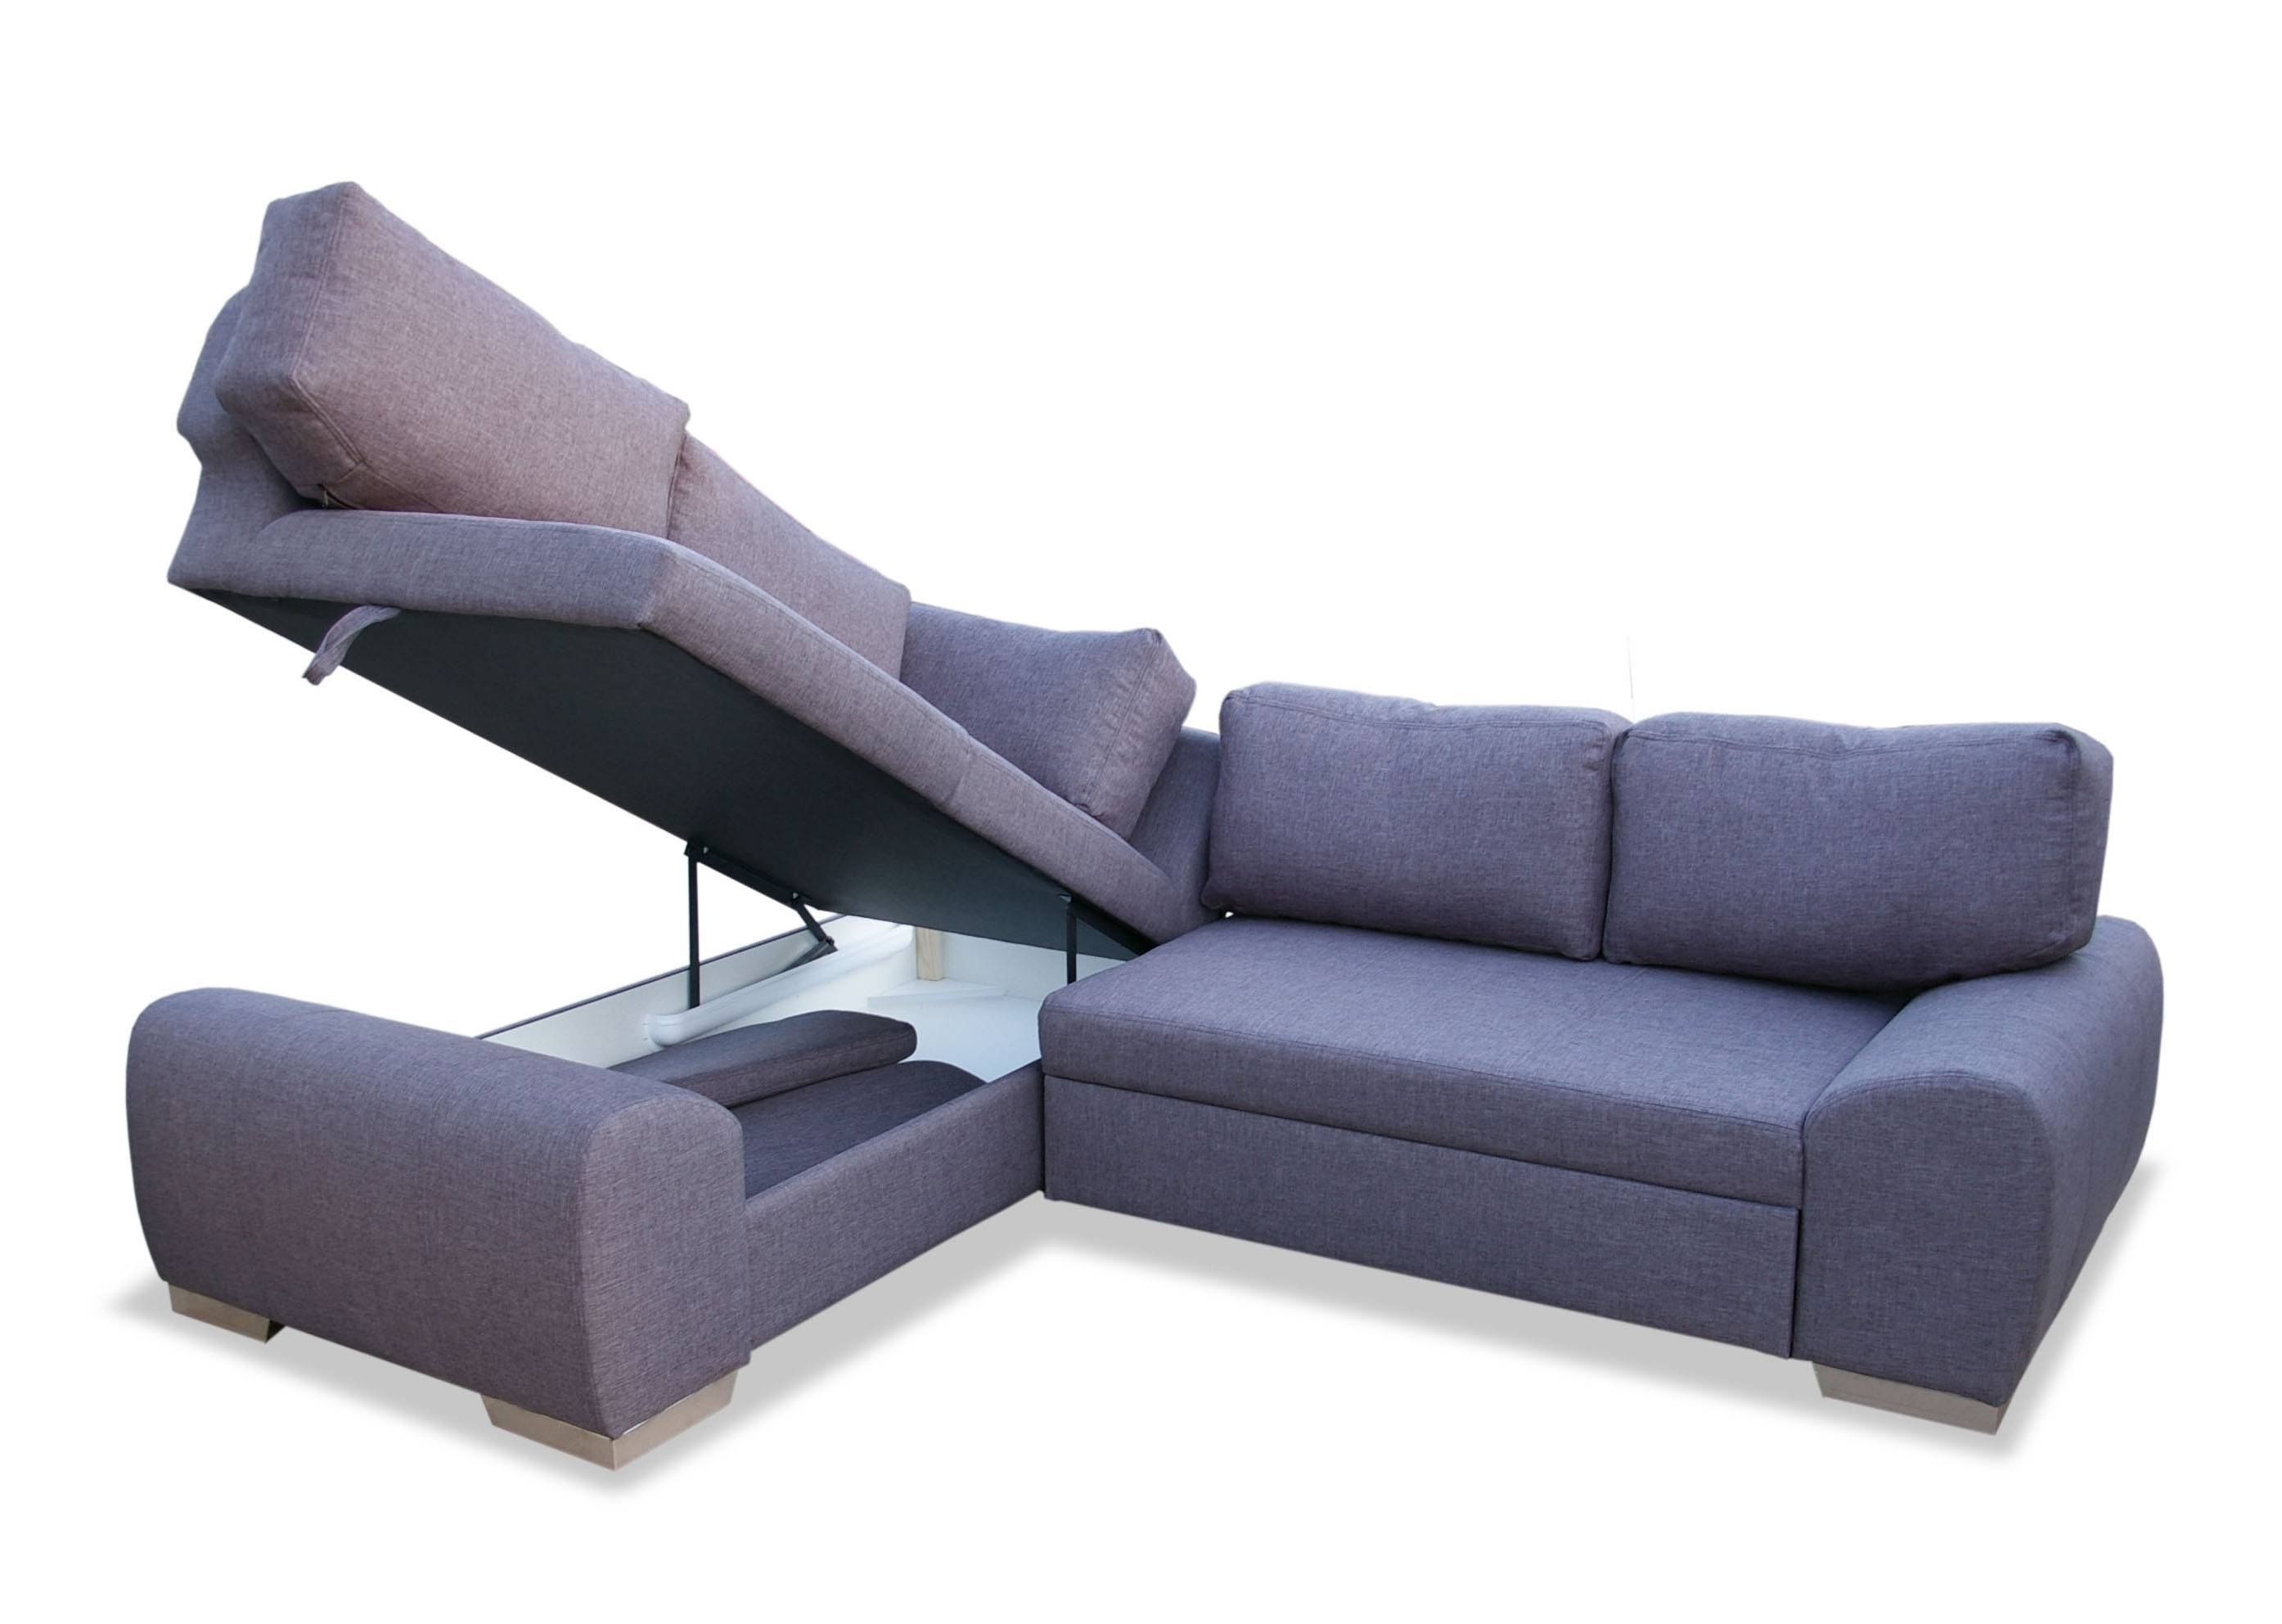 Sofas Center : Wonderful Sofa Convertible Furniture Best Nice Beds inside Storage Sofa Beds (Image 27 of 30)